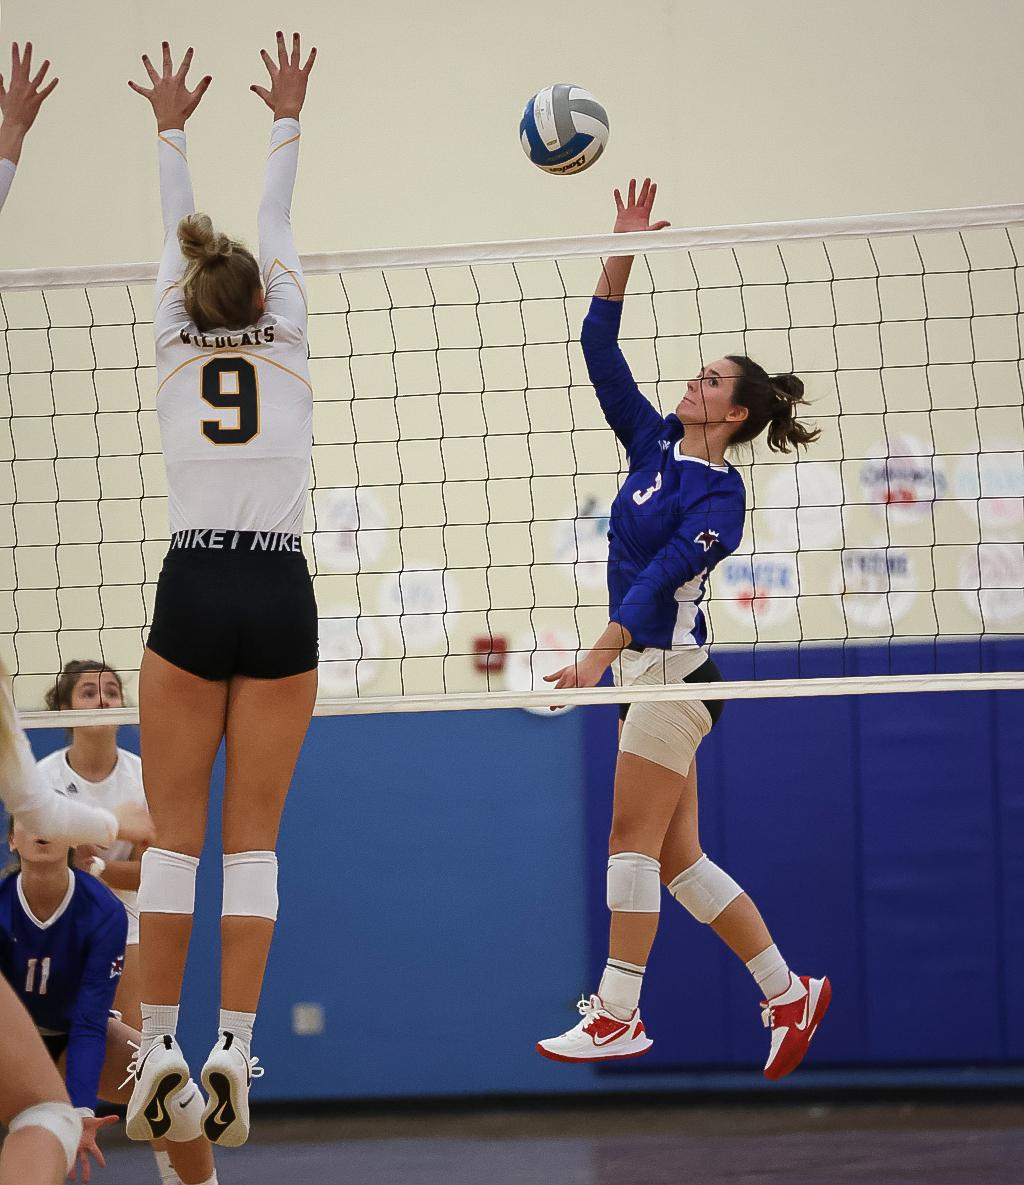 Paige Thibault (3) sends the ball past Ashlyn Olson (9) for a kill. Thibaults team-high 19 kills helped No. 4-2A Watertown-Mayer defeat No. 9-2A New London-Spicer in four sets on Thursday night. Photo by Cheryl A. Myers, SportsEngine